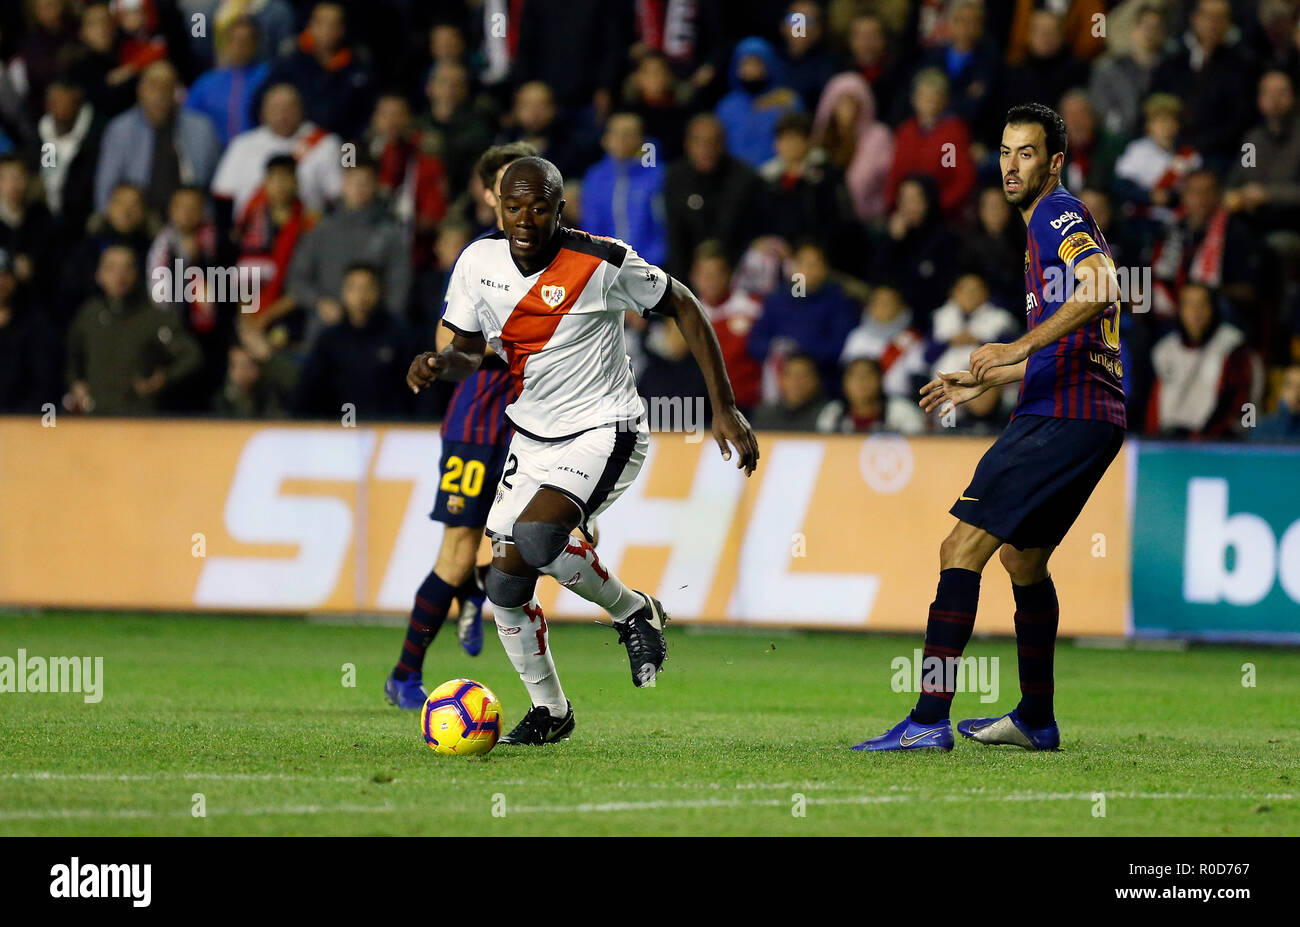 Rayo Vallecano High Resolution Stock Photography And Images Alamy